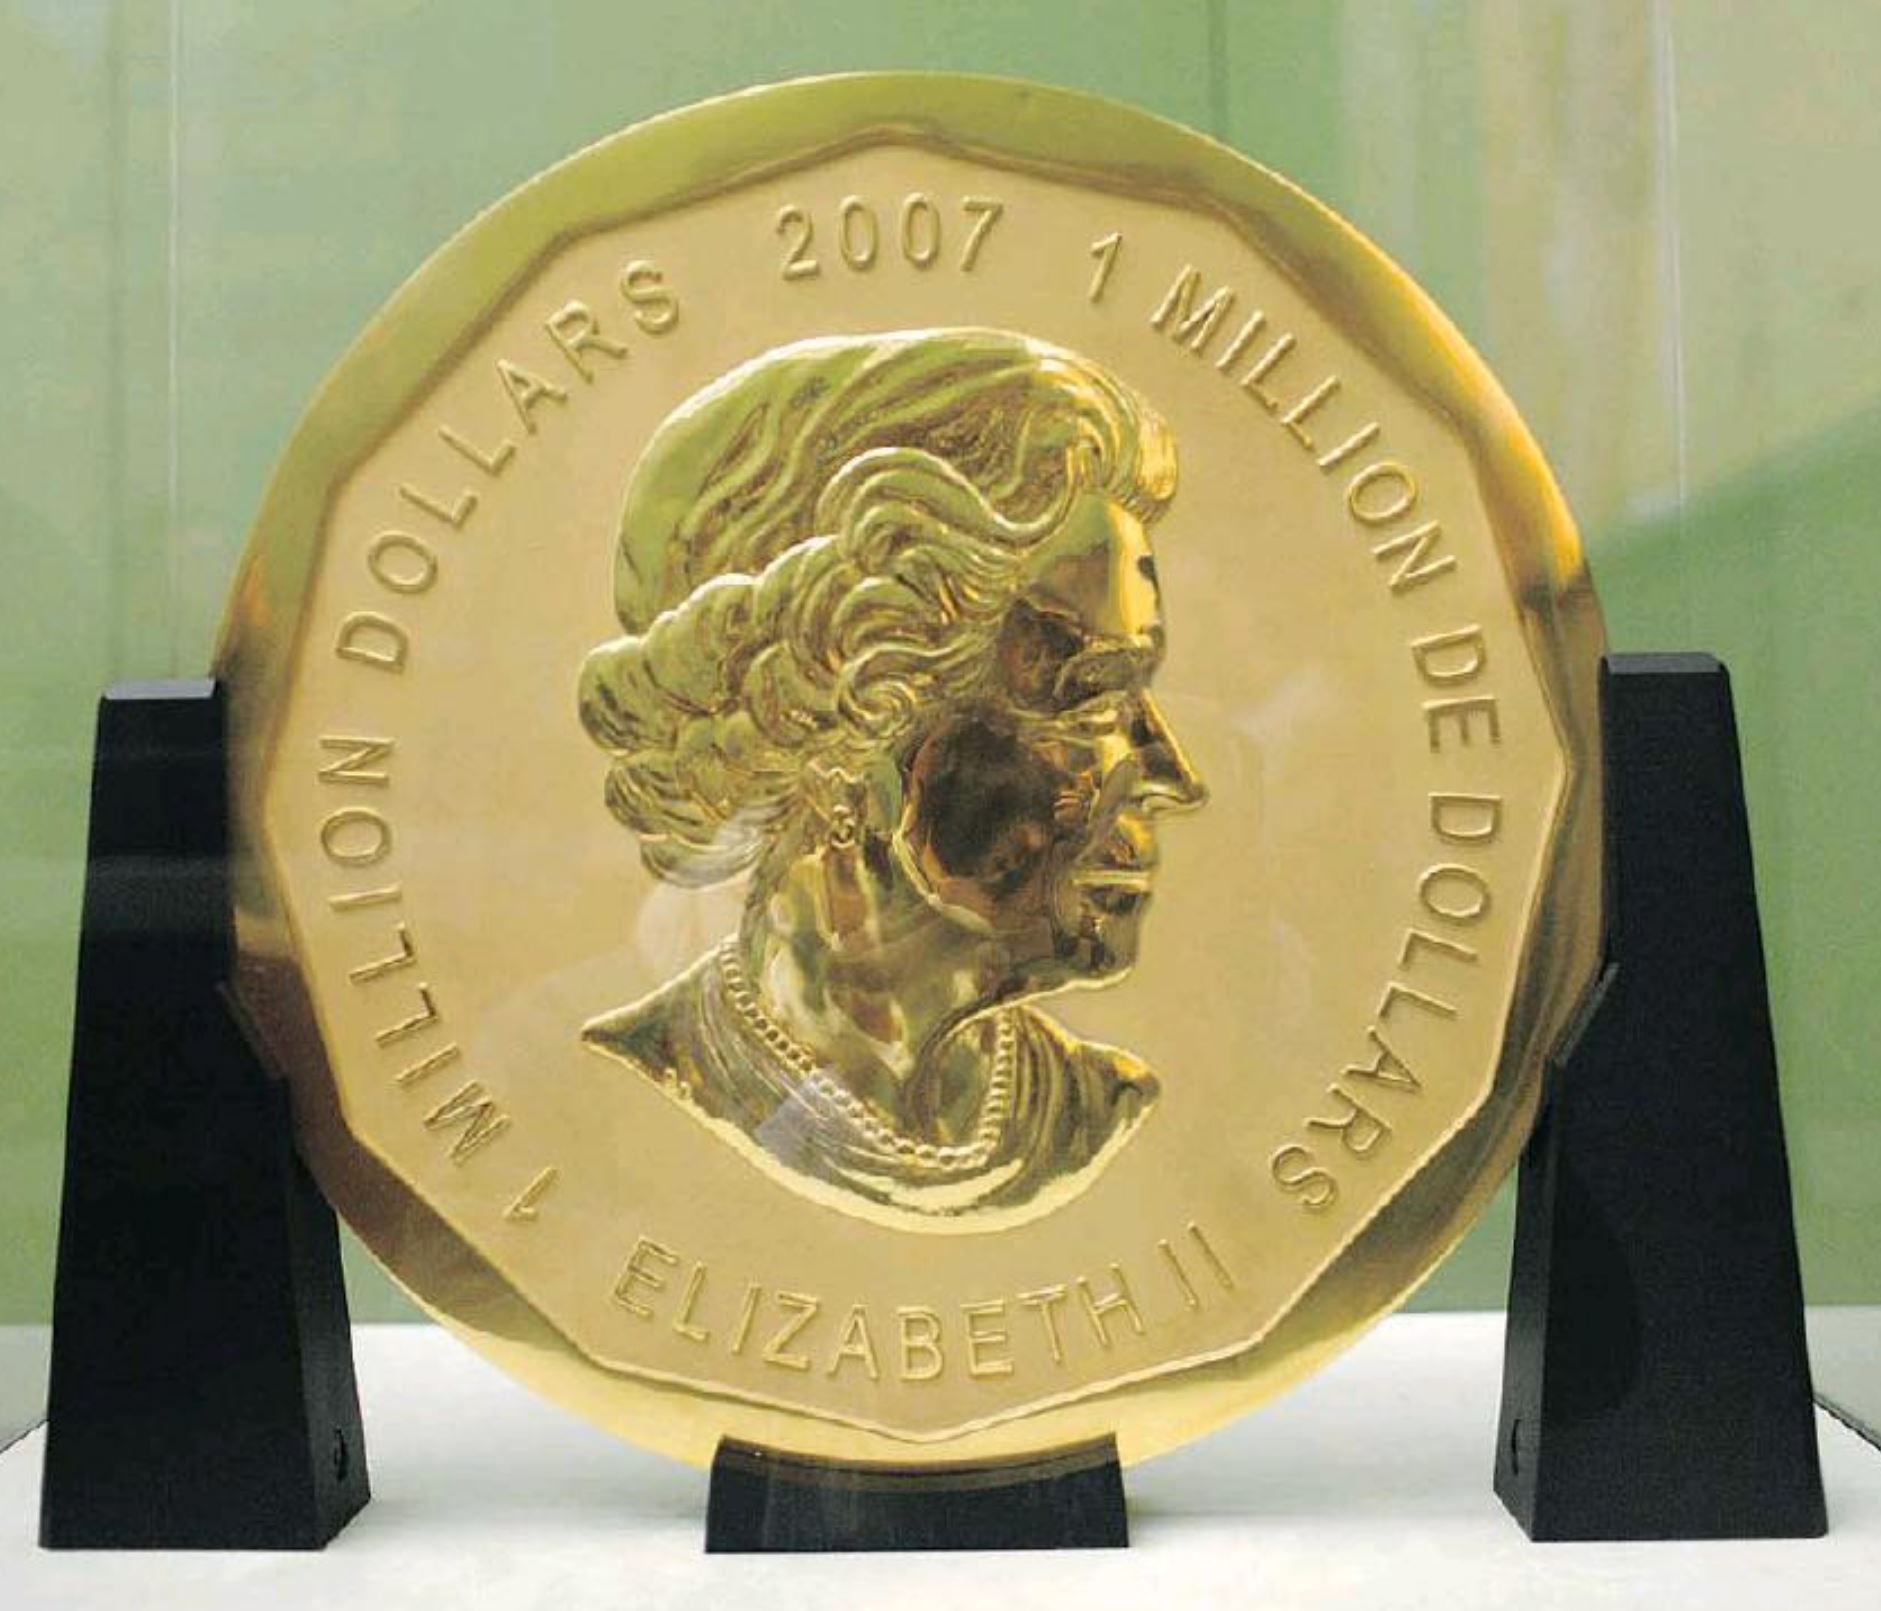 Theft 100 Kg Solid Gold Coin Goes Missing From Museum